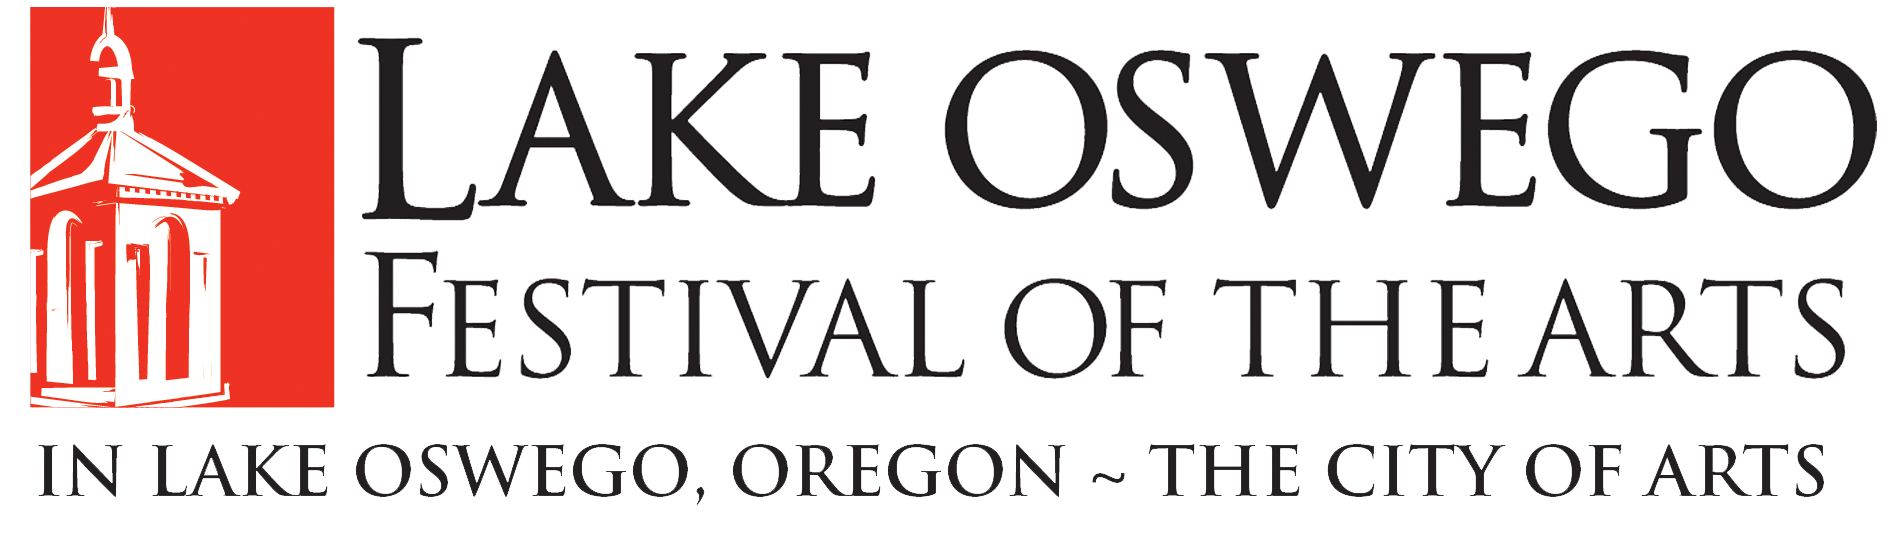 2019 Lake Oswego Festival of the Arts